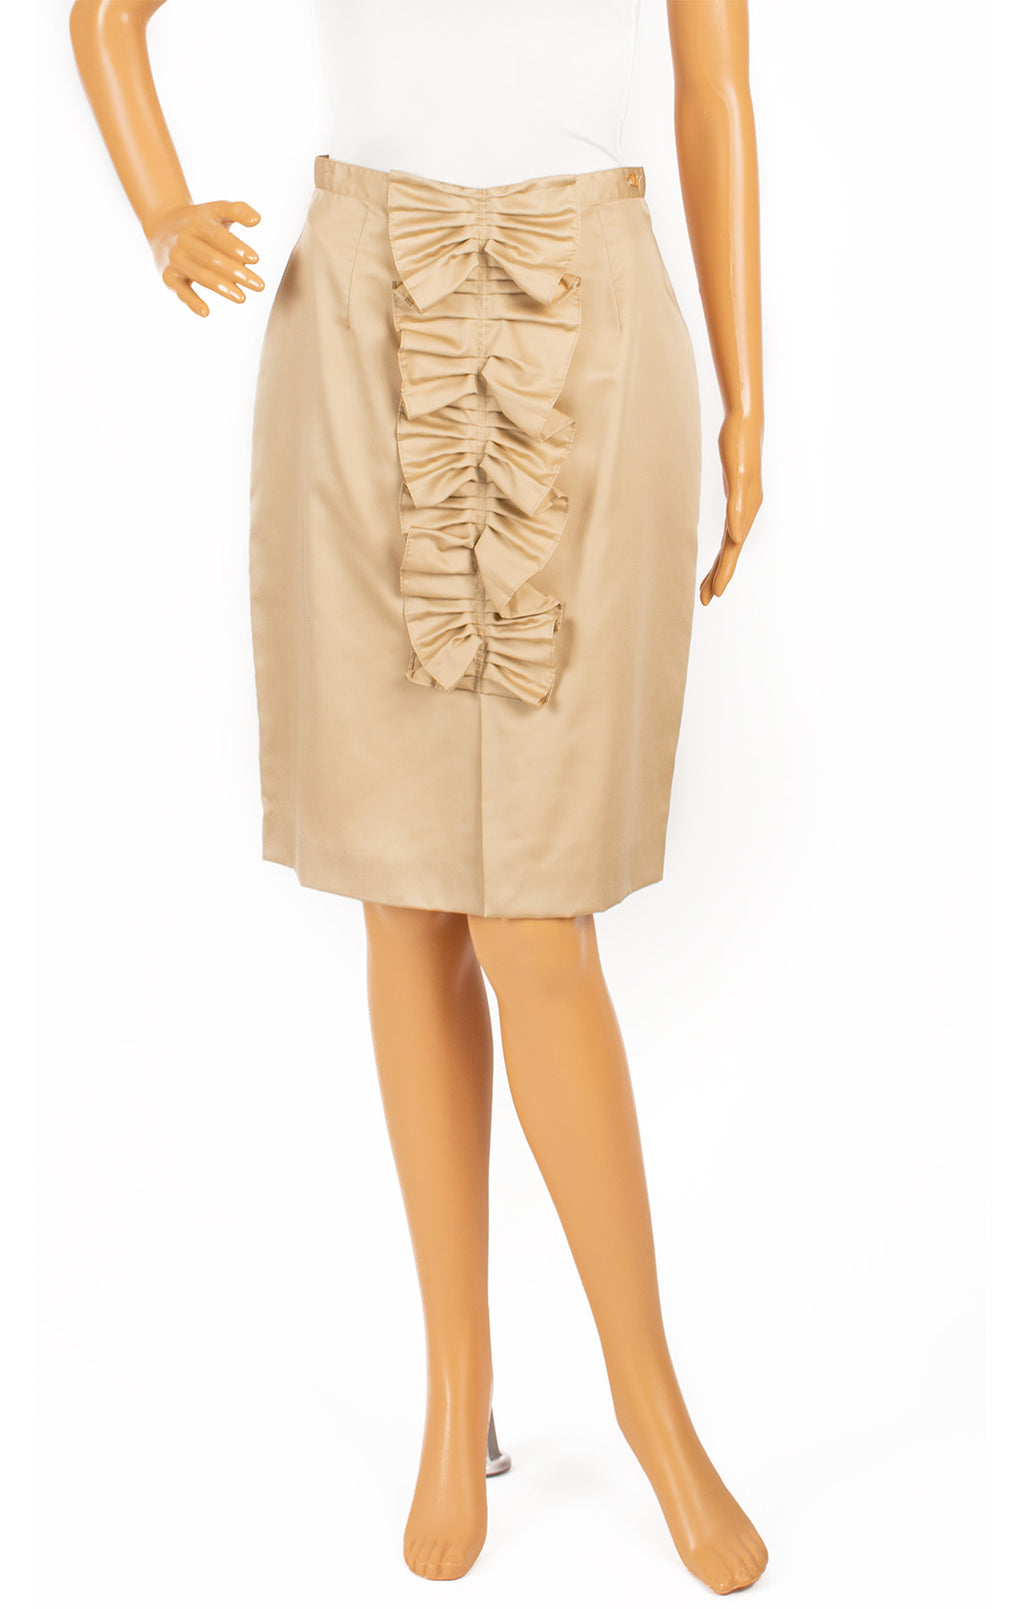 Front view of CH for Carolina Herrera Skirt Size: 4